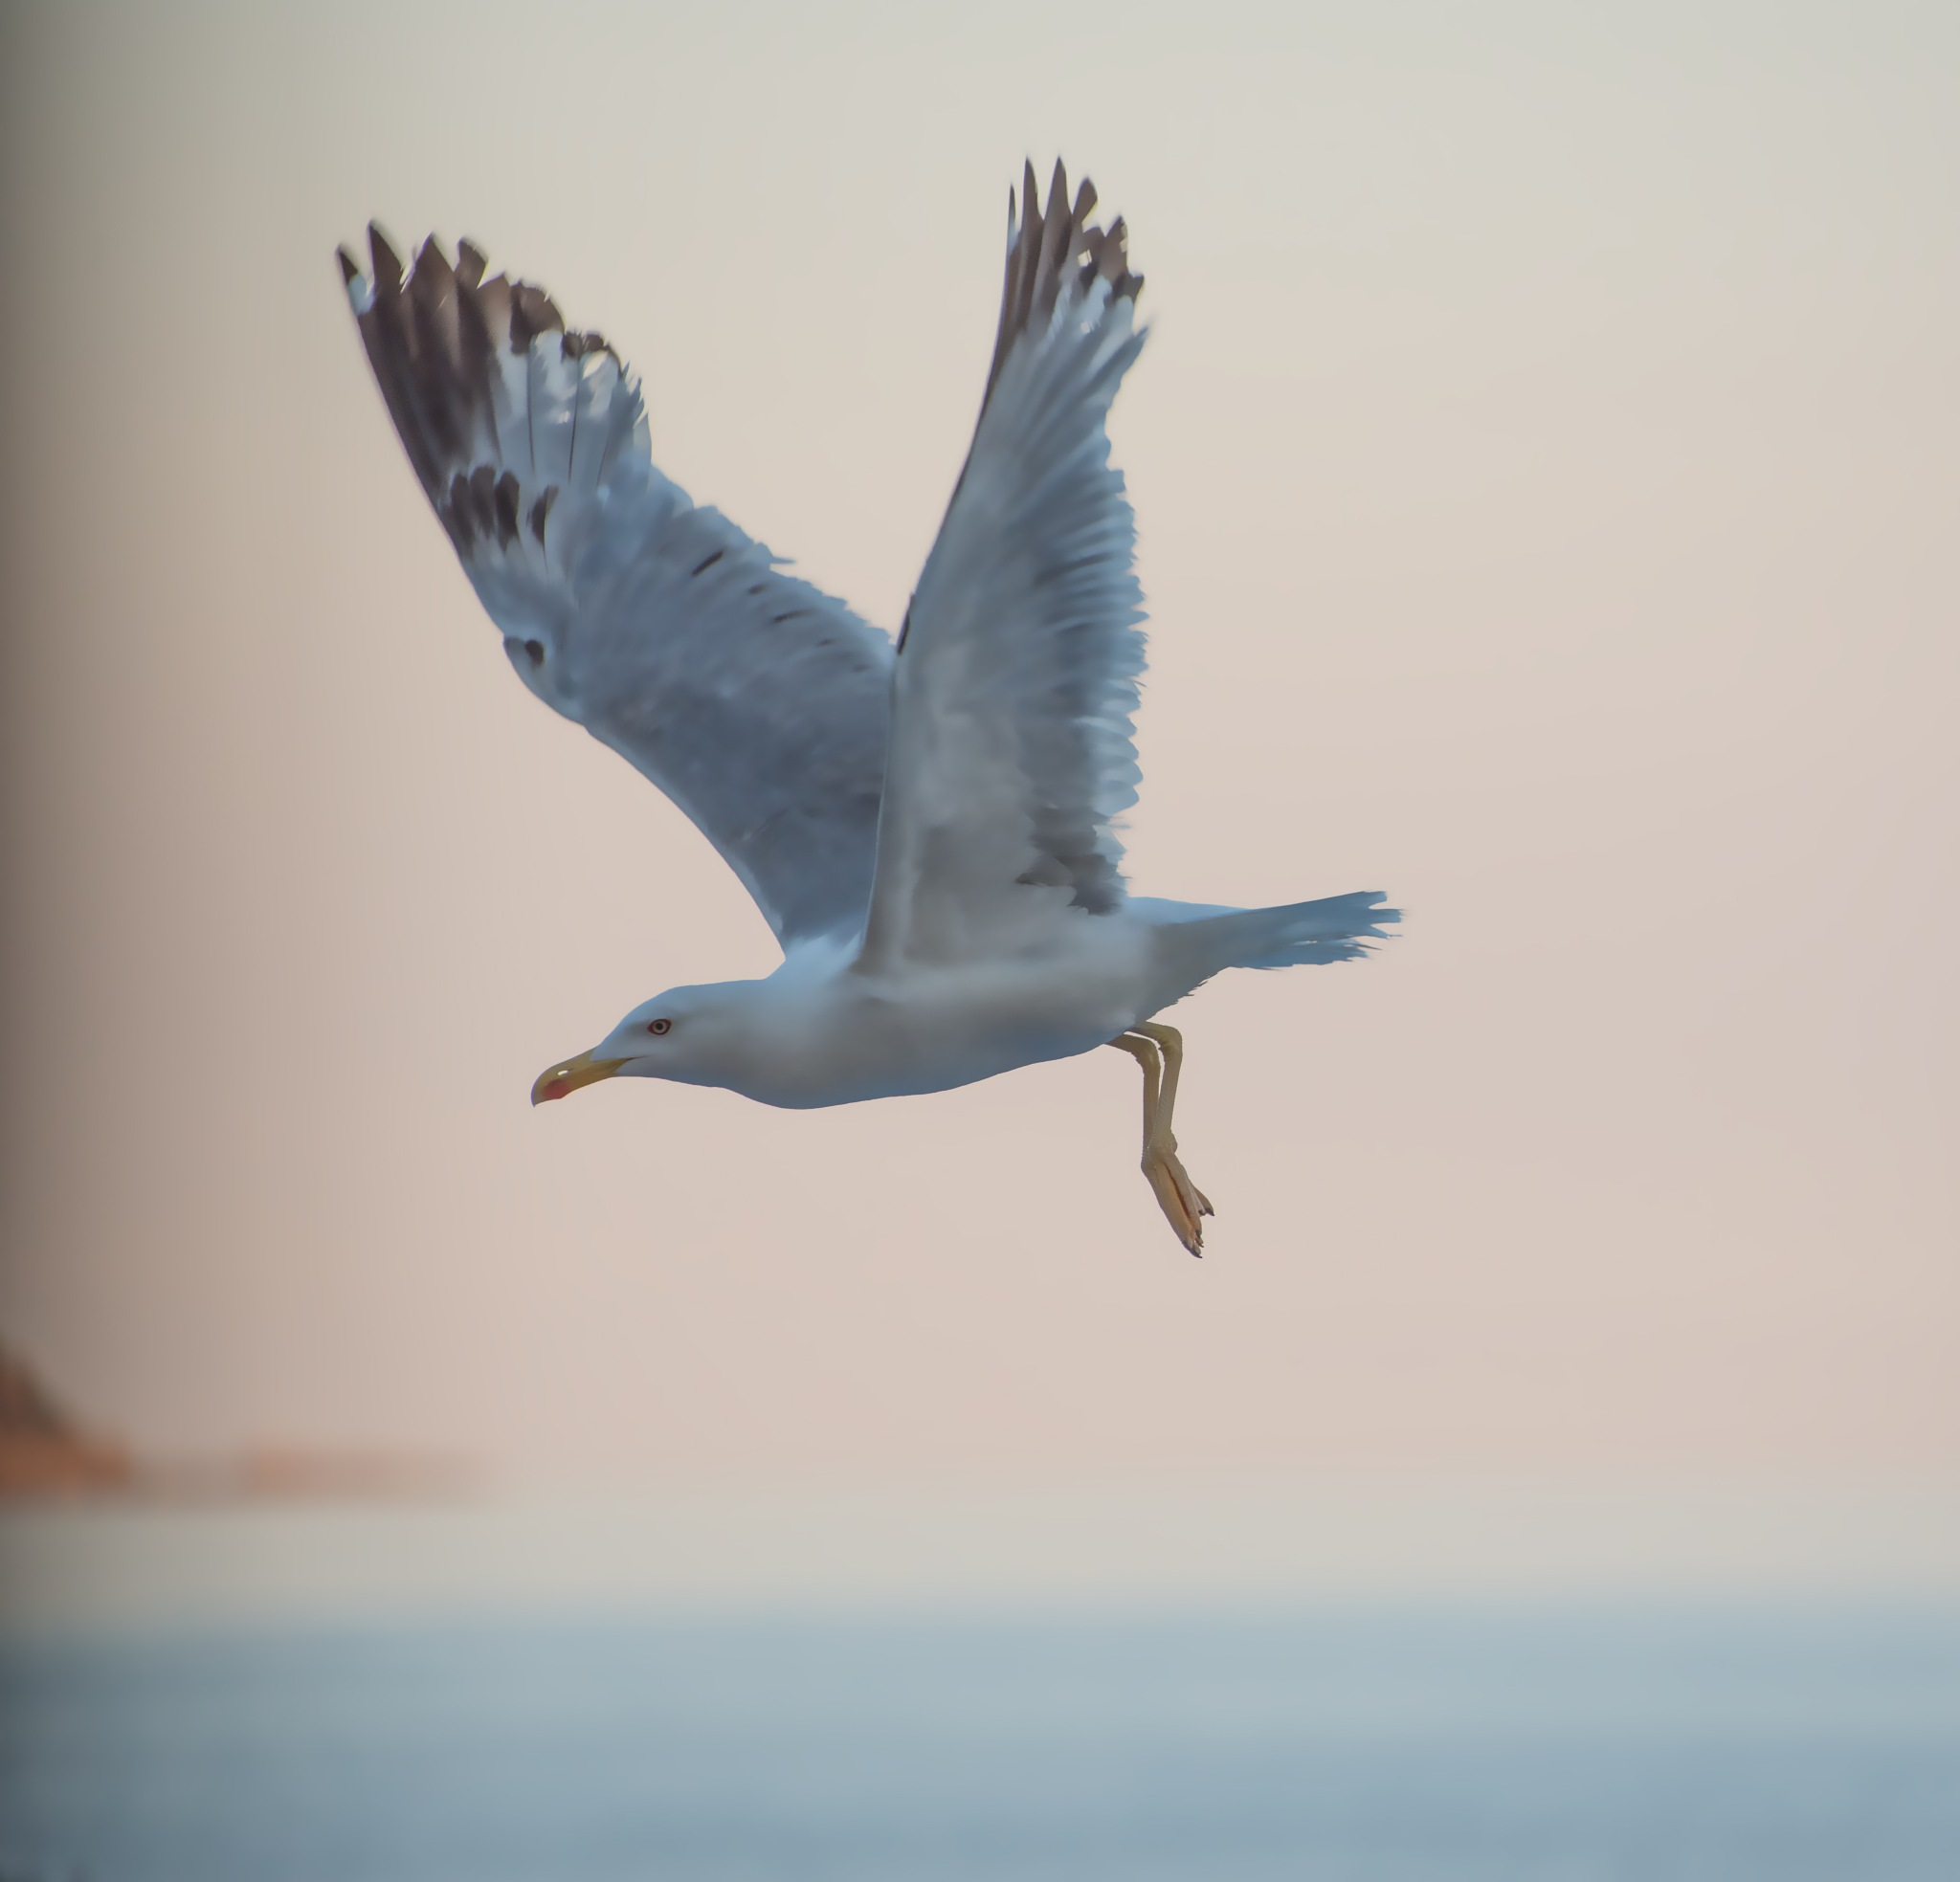 gull flying at dawn by sunrisesunset